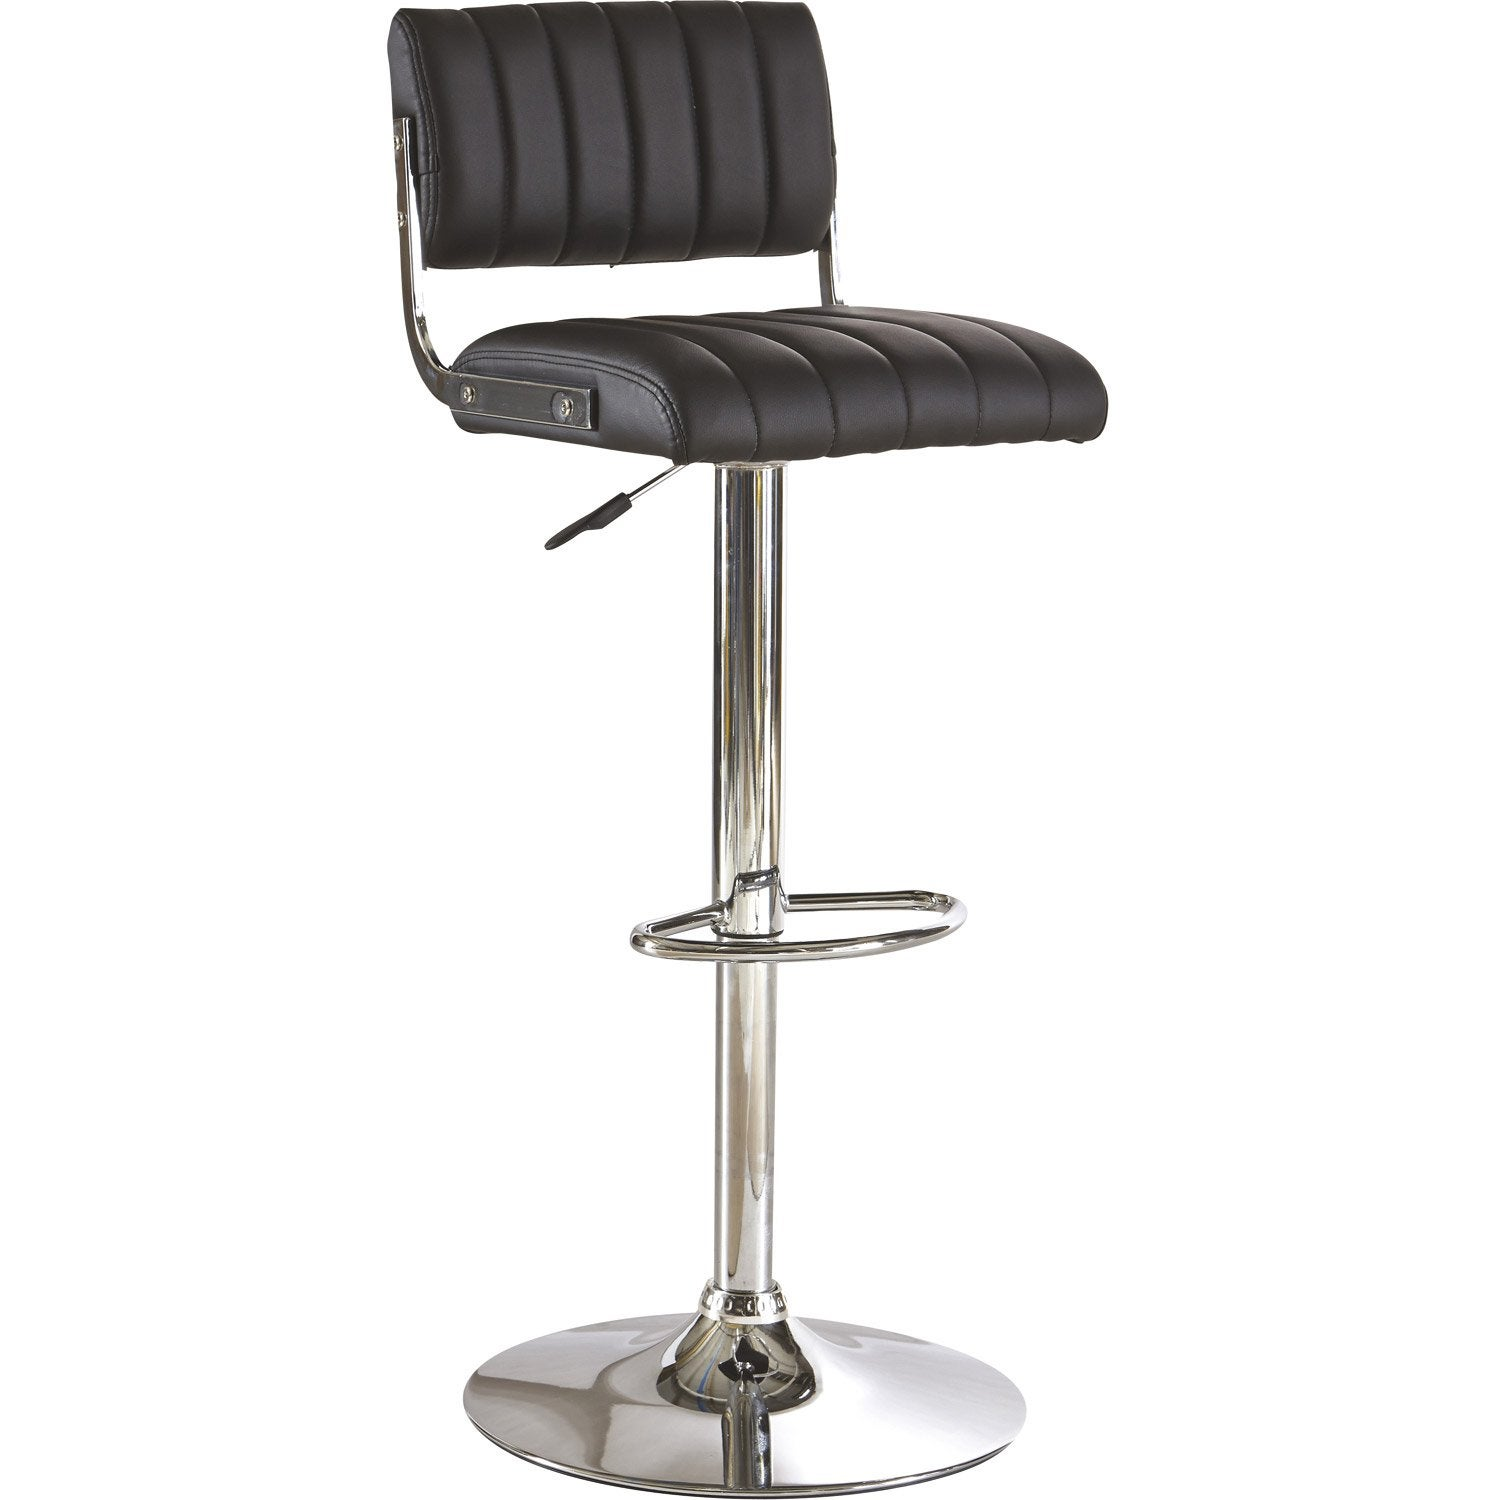 Tabouret de douche leroy merlin attractive chaise de bar for Tabouret salle de bain leroy merlin